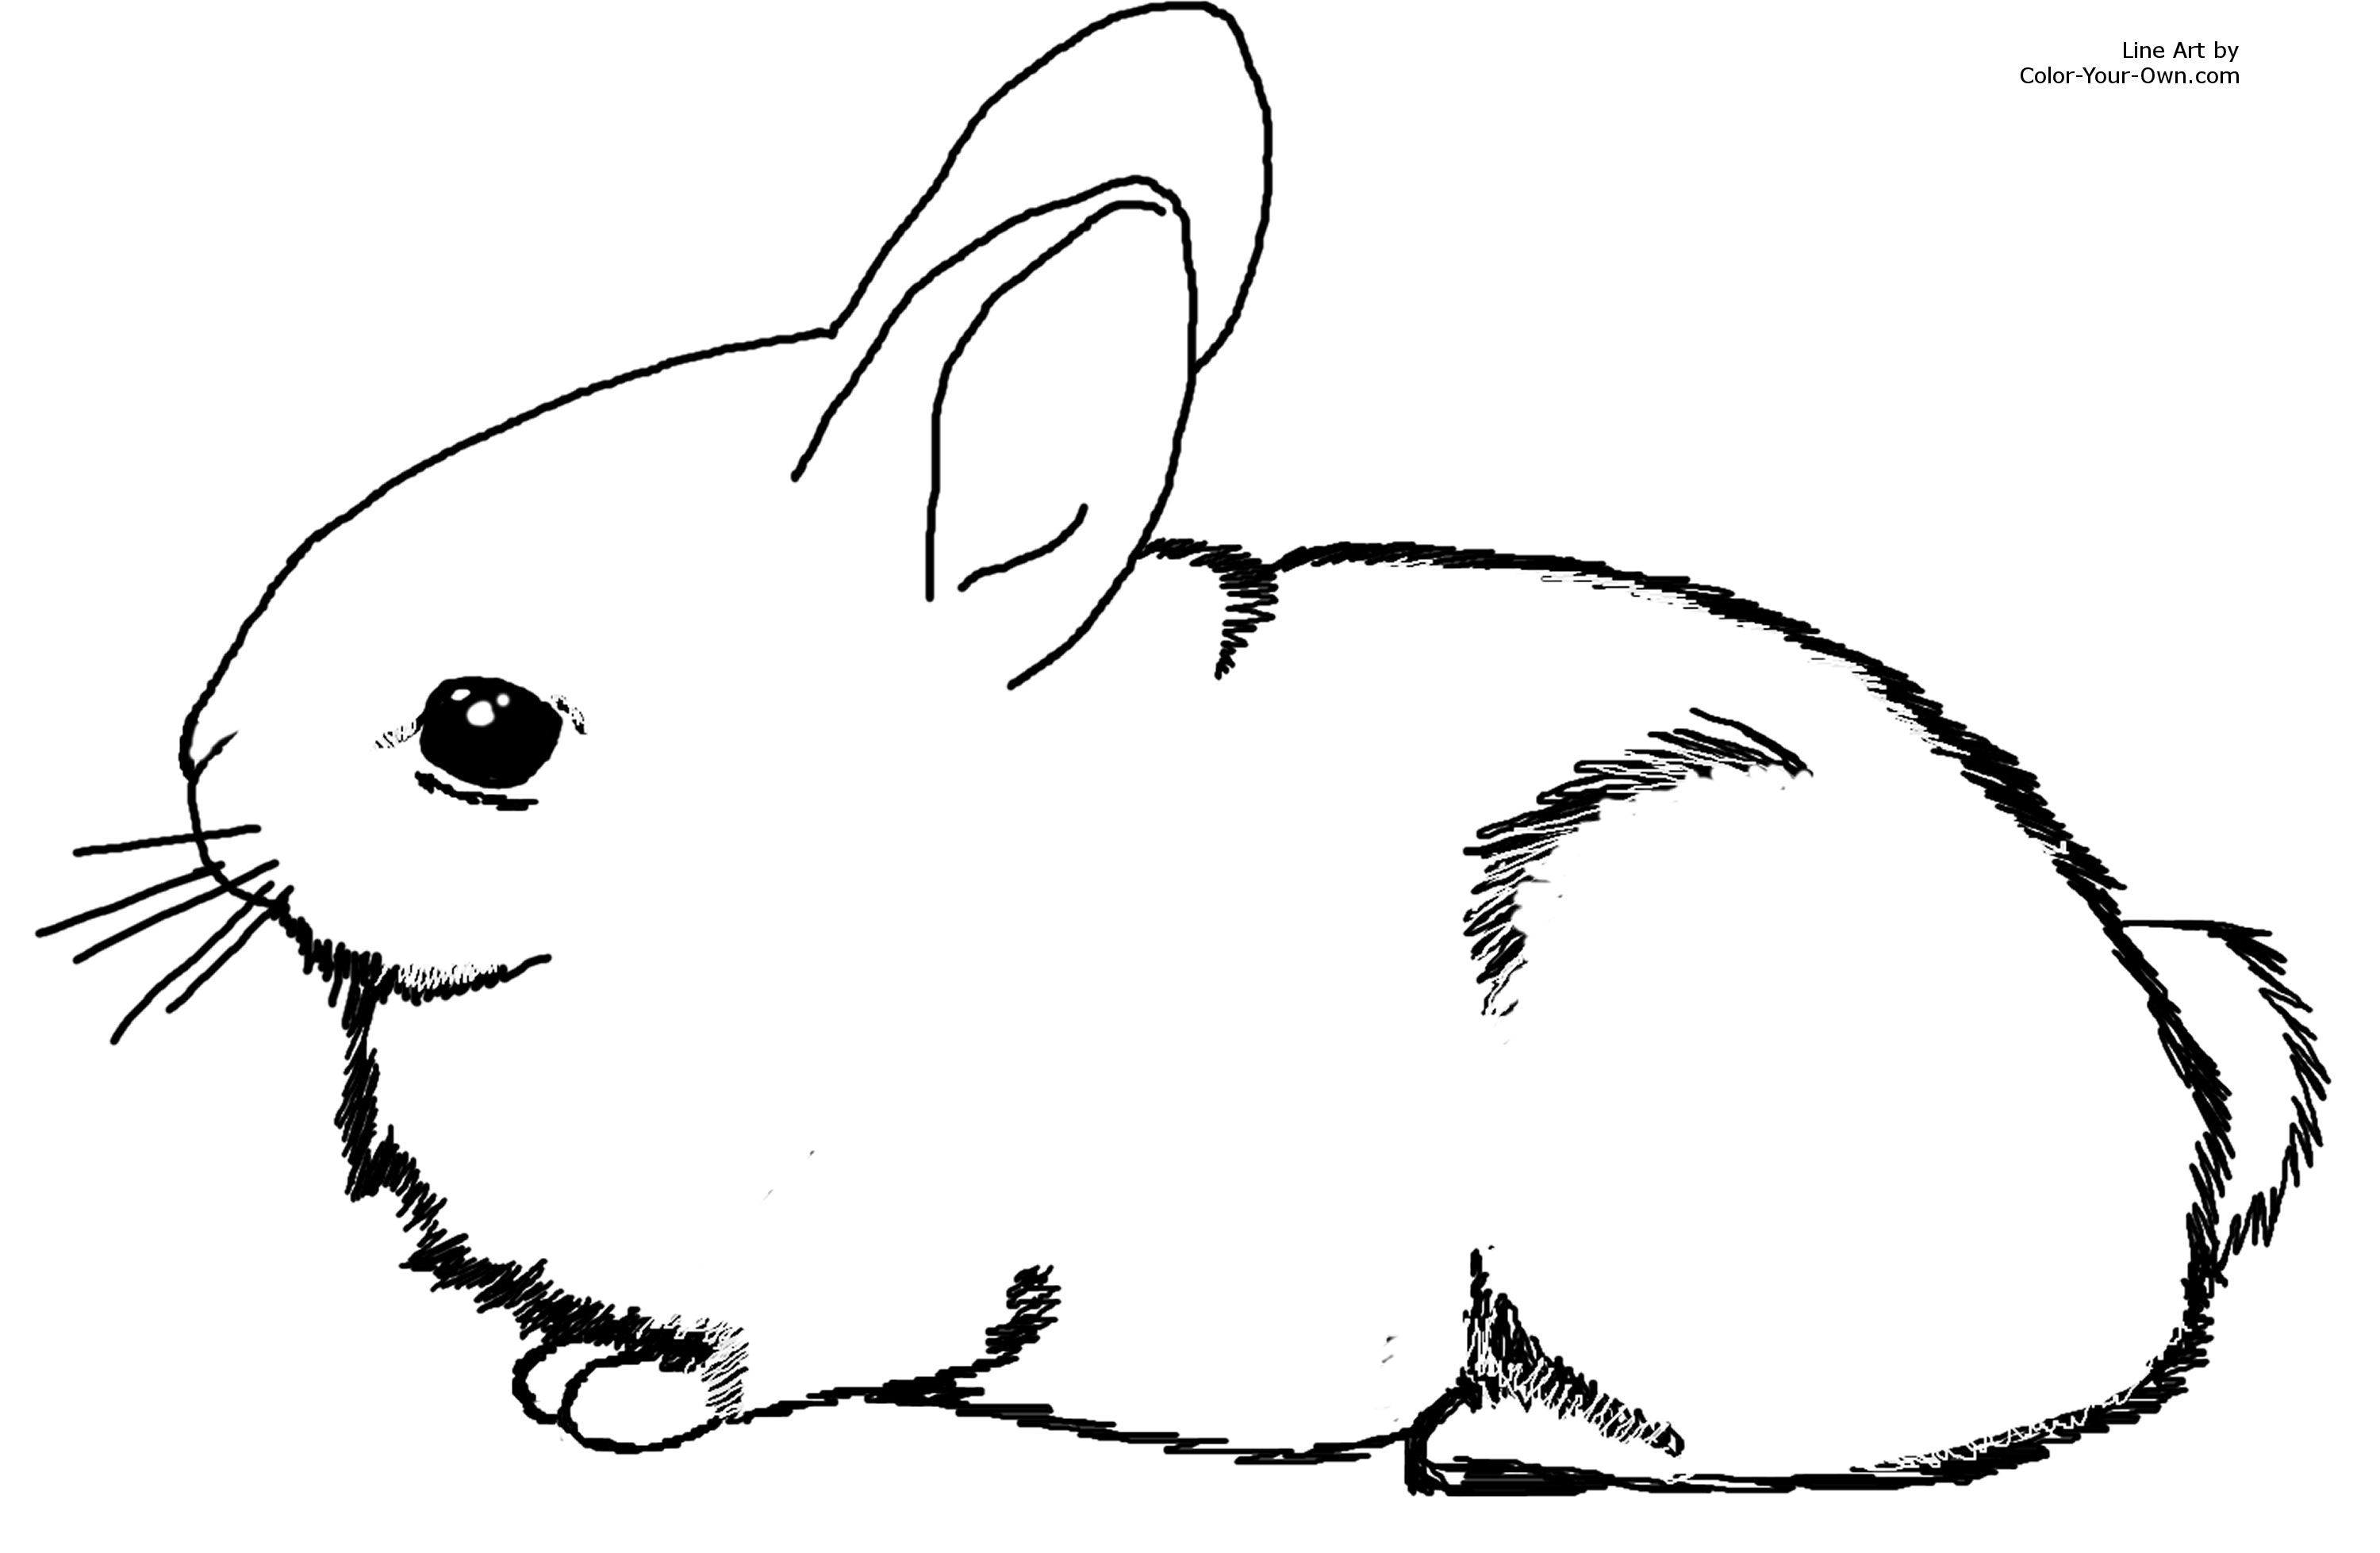 Google Image Result For Http Color Your Own Com Printable Coloring Pages Babybunny Jpg Bunny Coloring Pages Dragon Coloring Page Easter Bunny Colouring